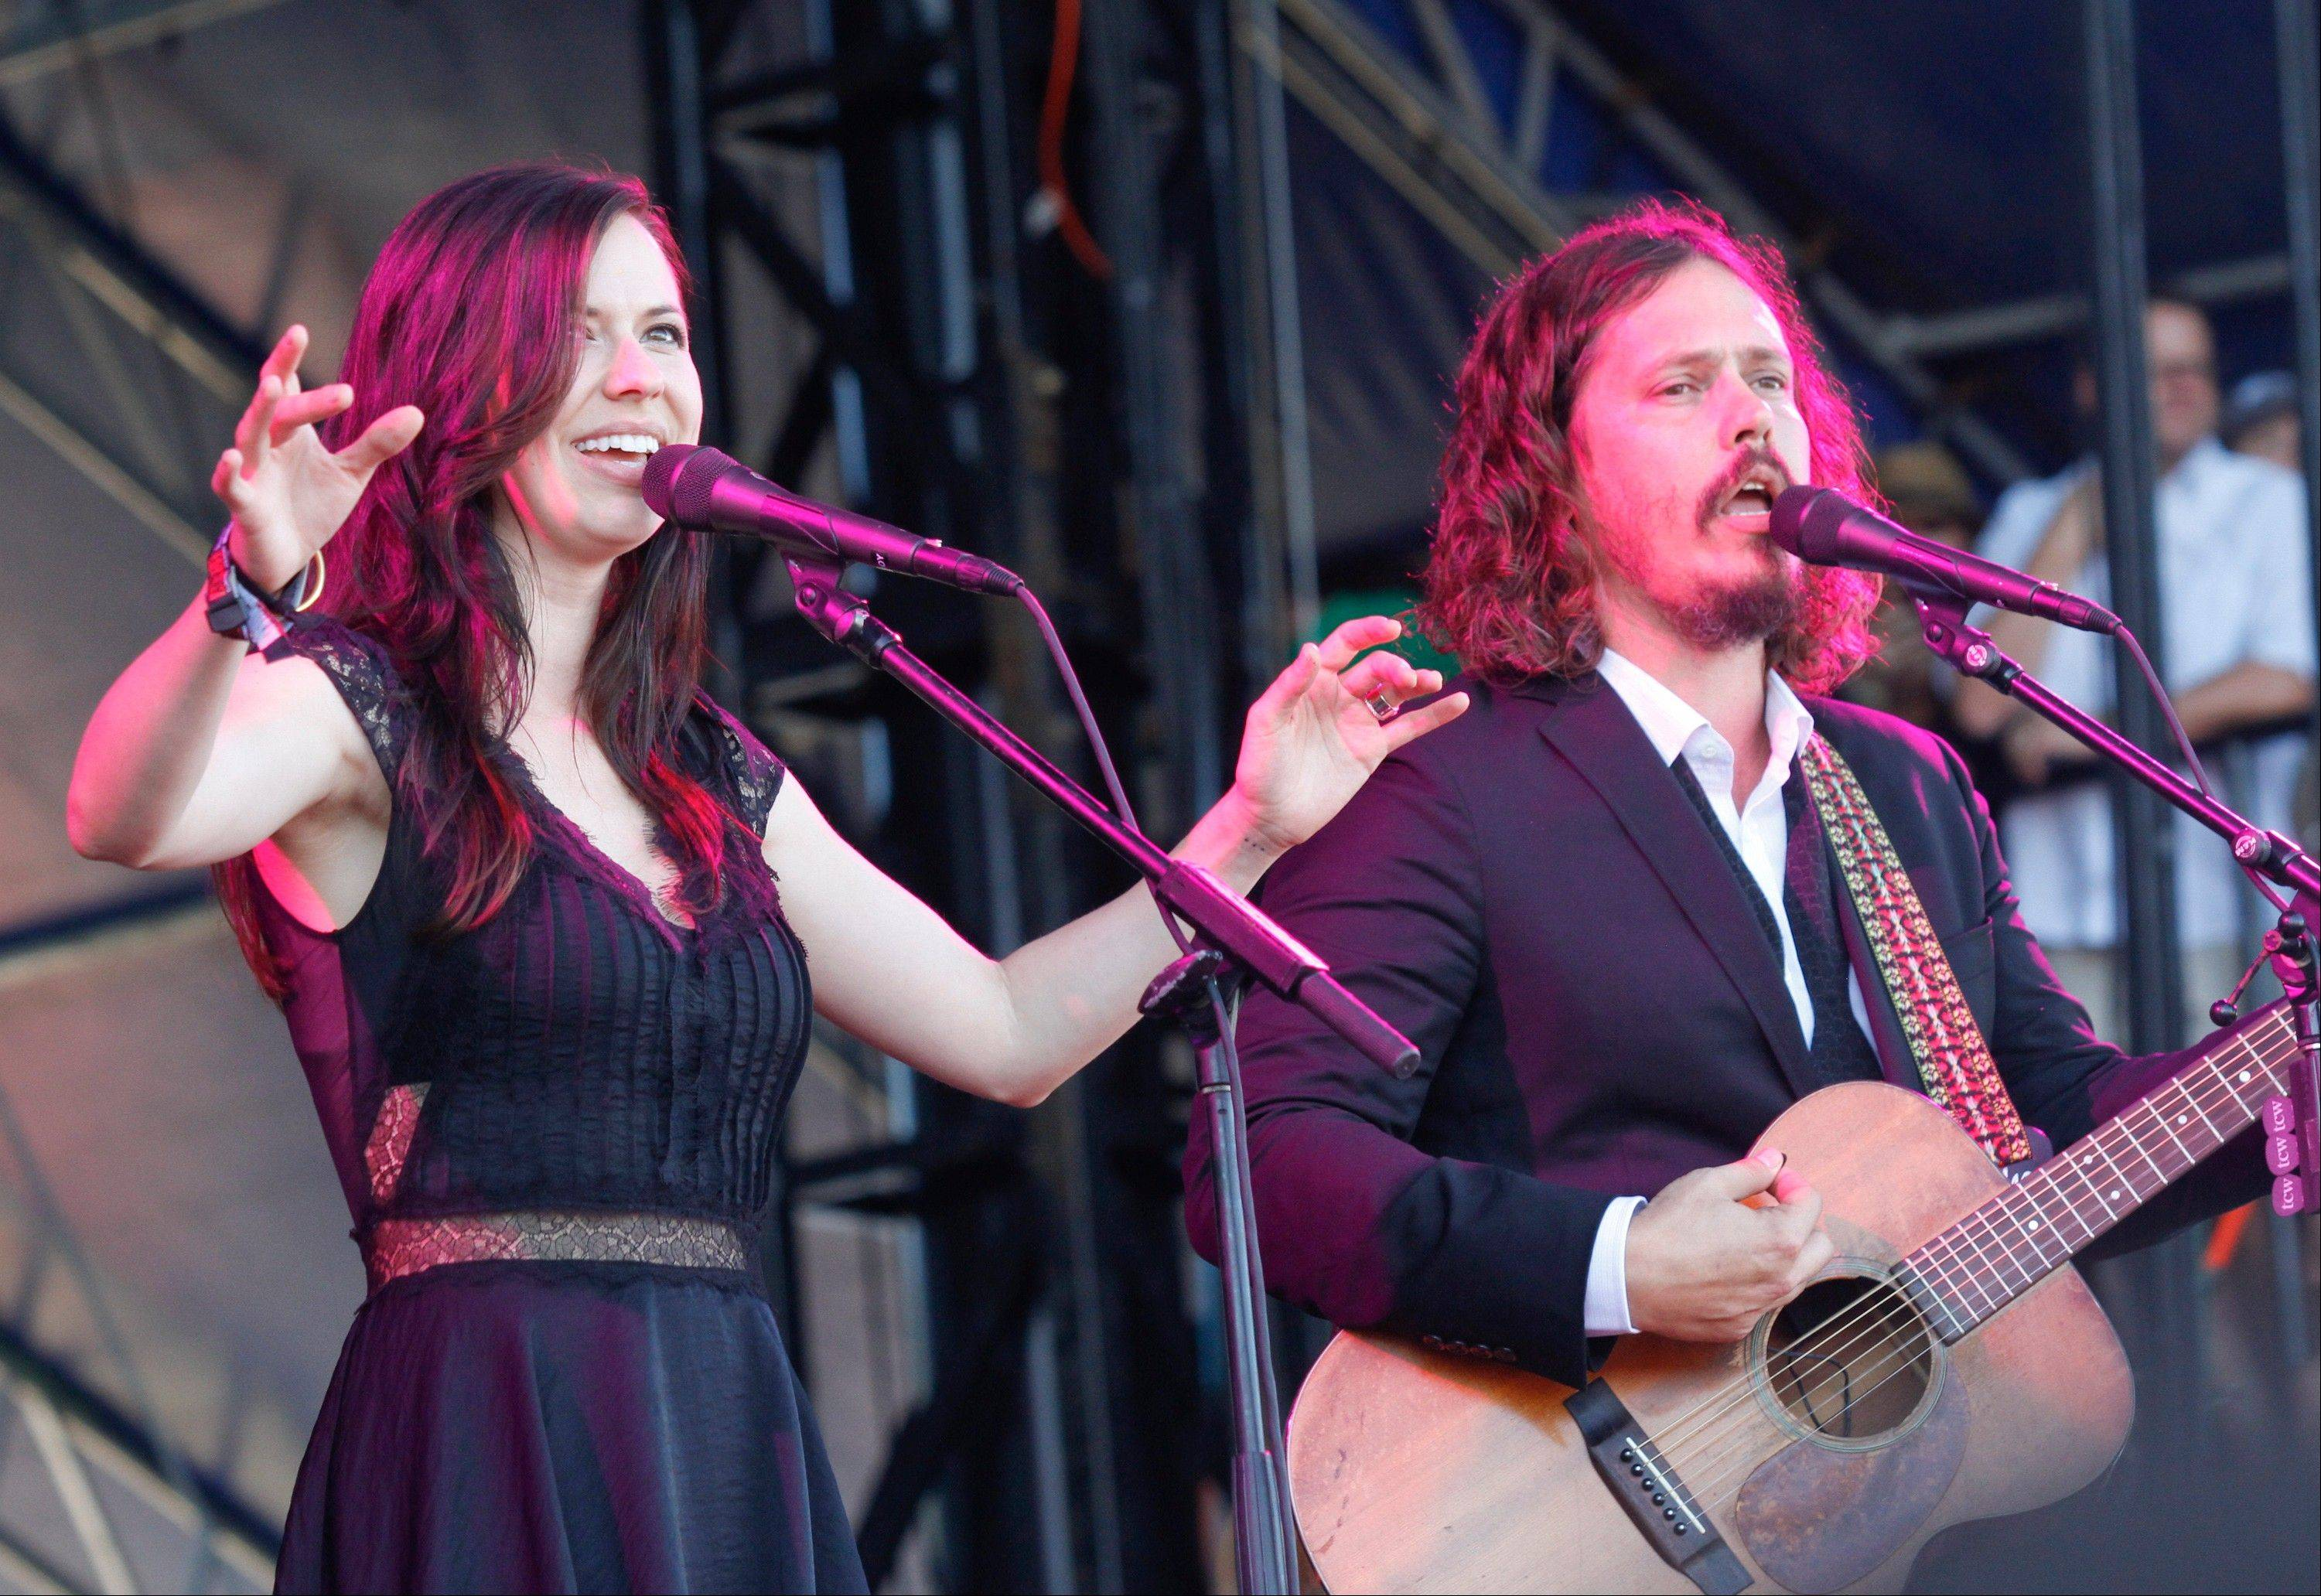 The future of John Paul White and Joy Williams of The Civil Wars continues to be uncertain. Williams said Thursday in a Twitter chat that she�s been listening to new music, a sign that the Grammy-winning duo who ended their recent European tour due to �irreconcilable differences� may release a new album in 2013.